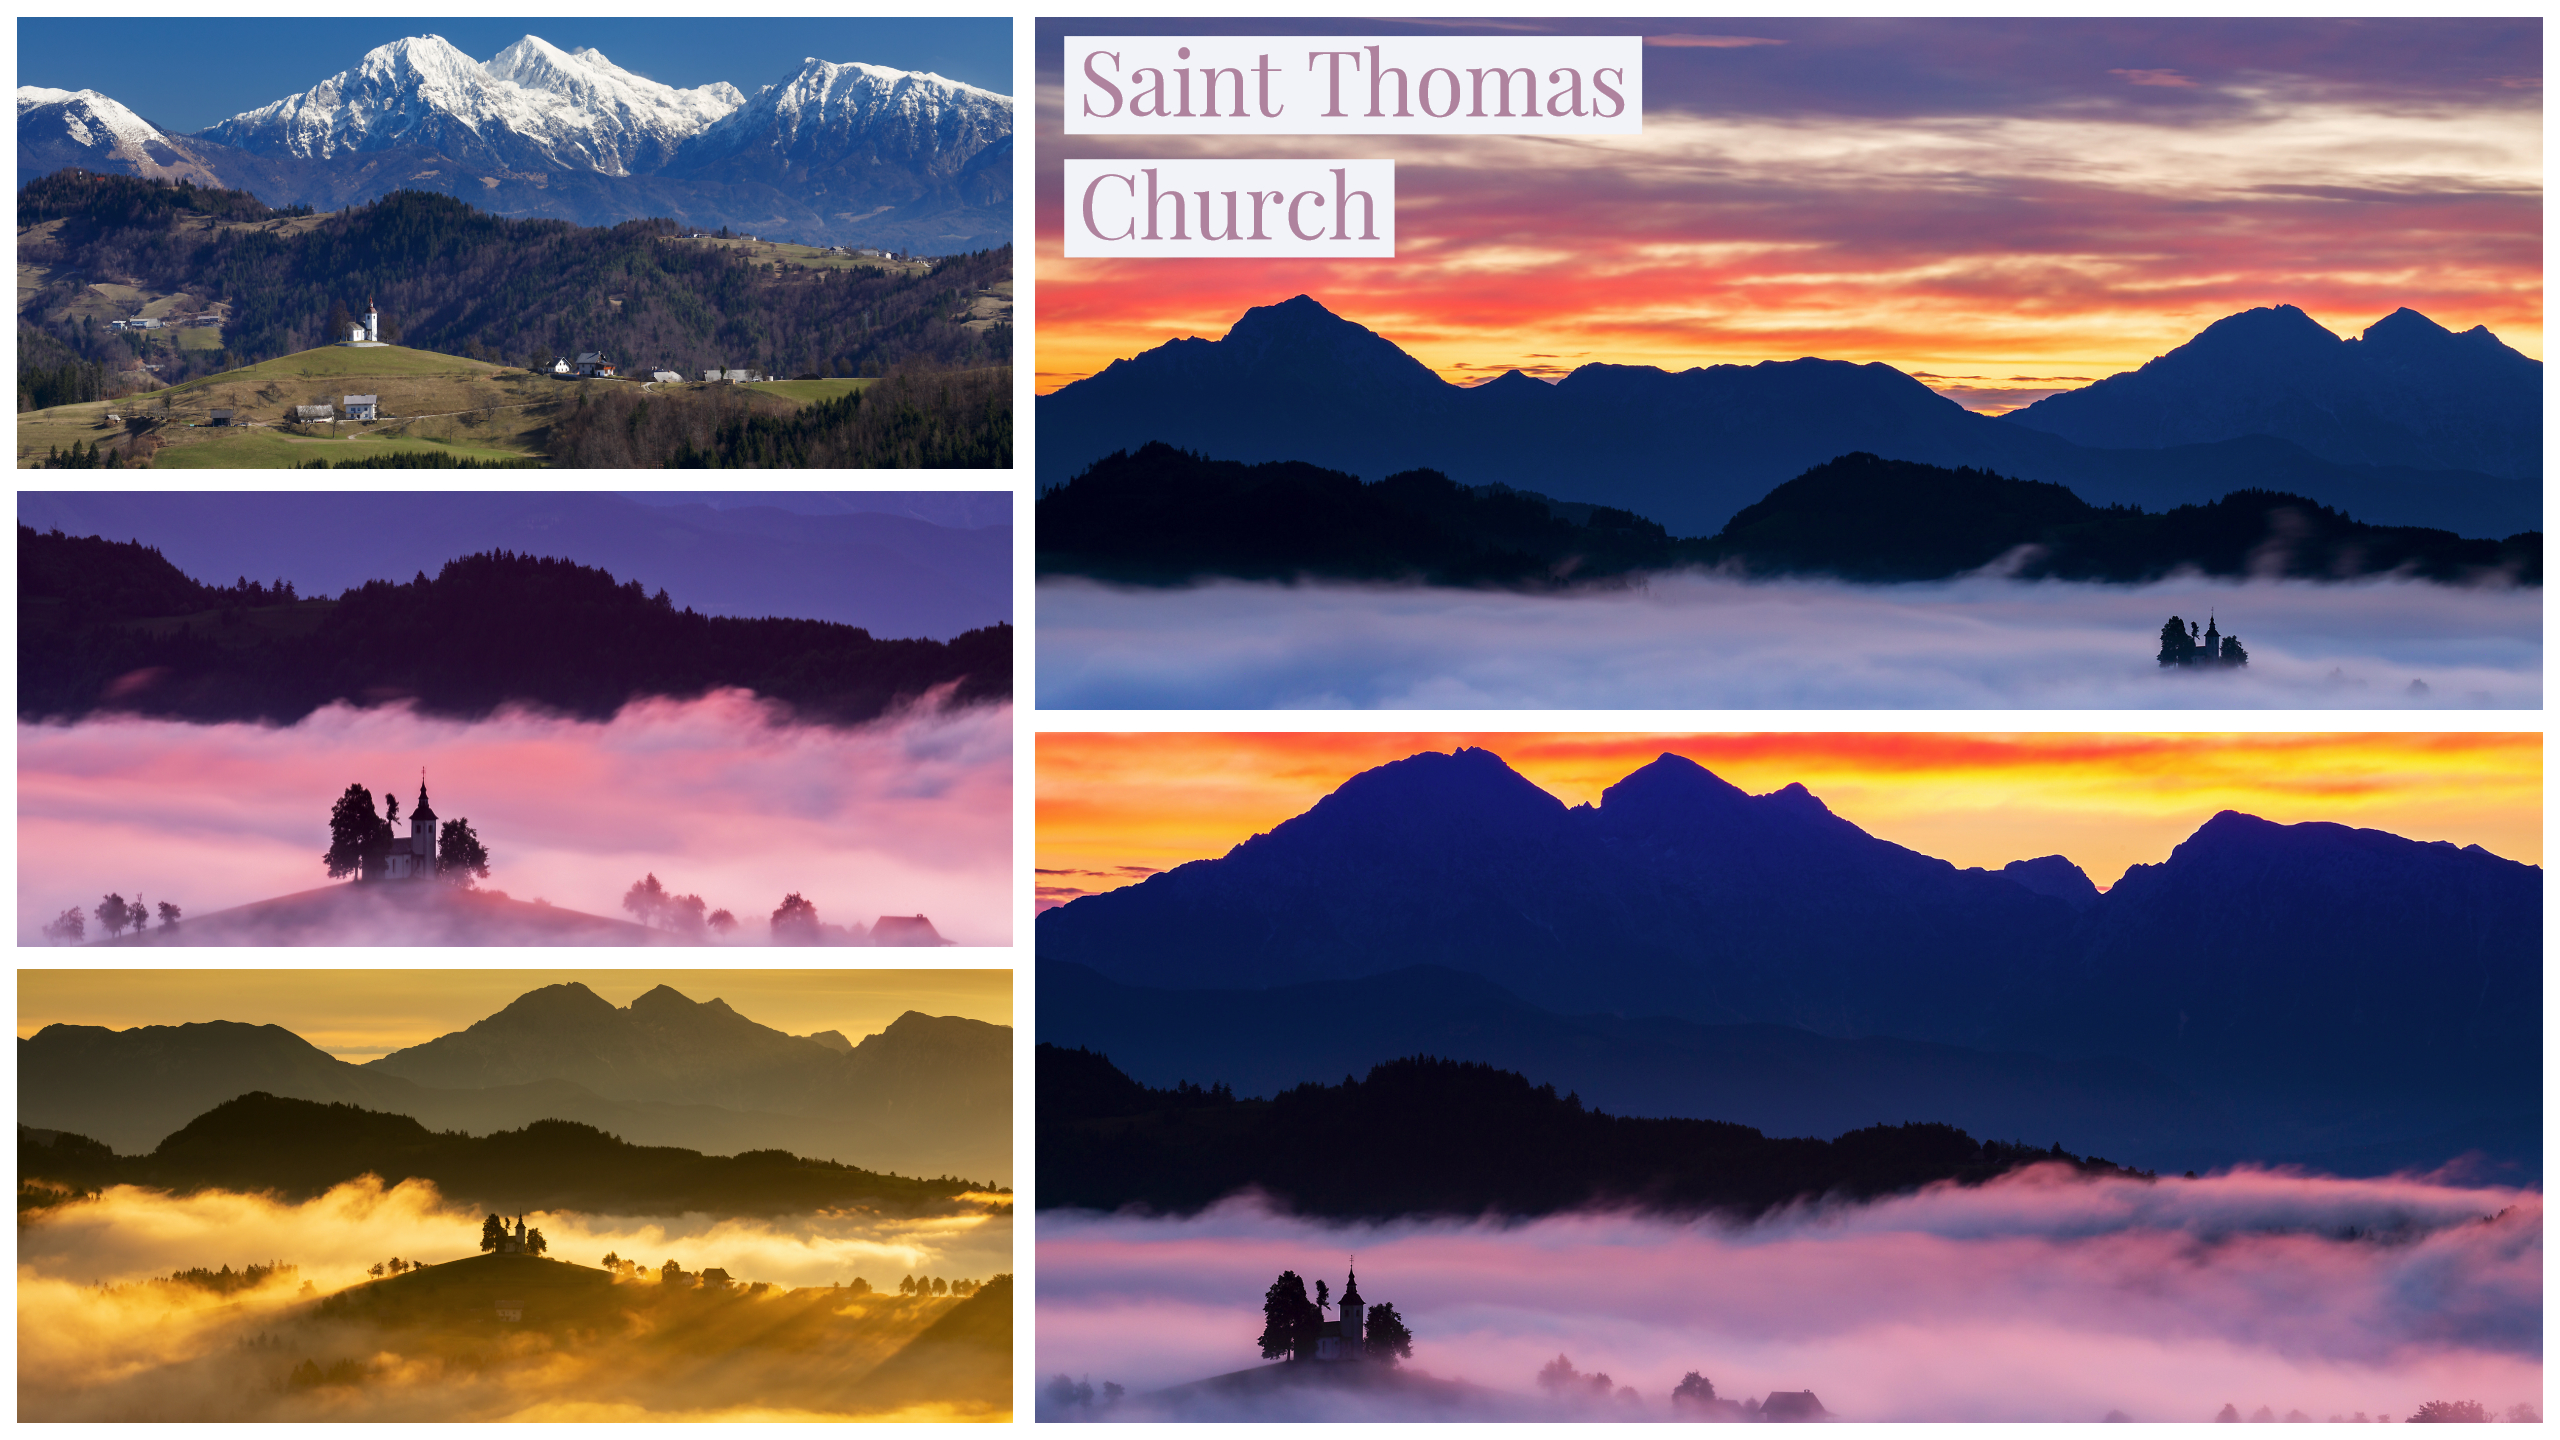 Guide to photographing saint thomas church in Slovenia